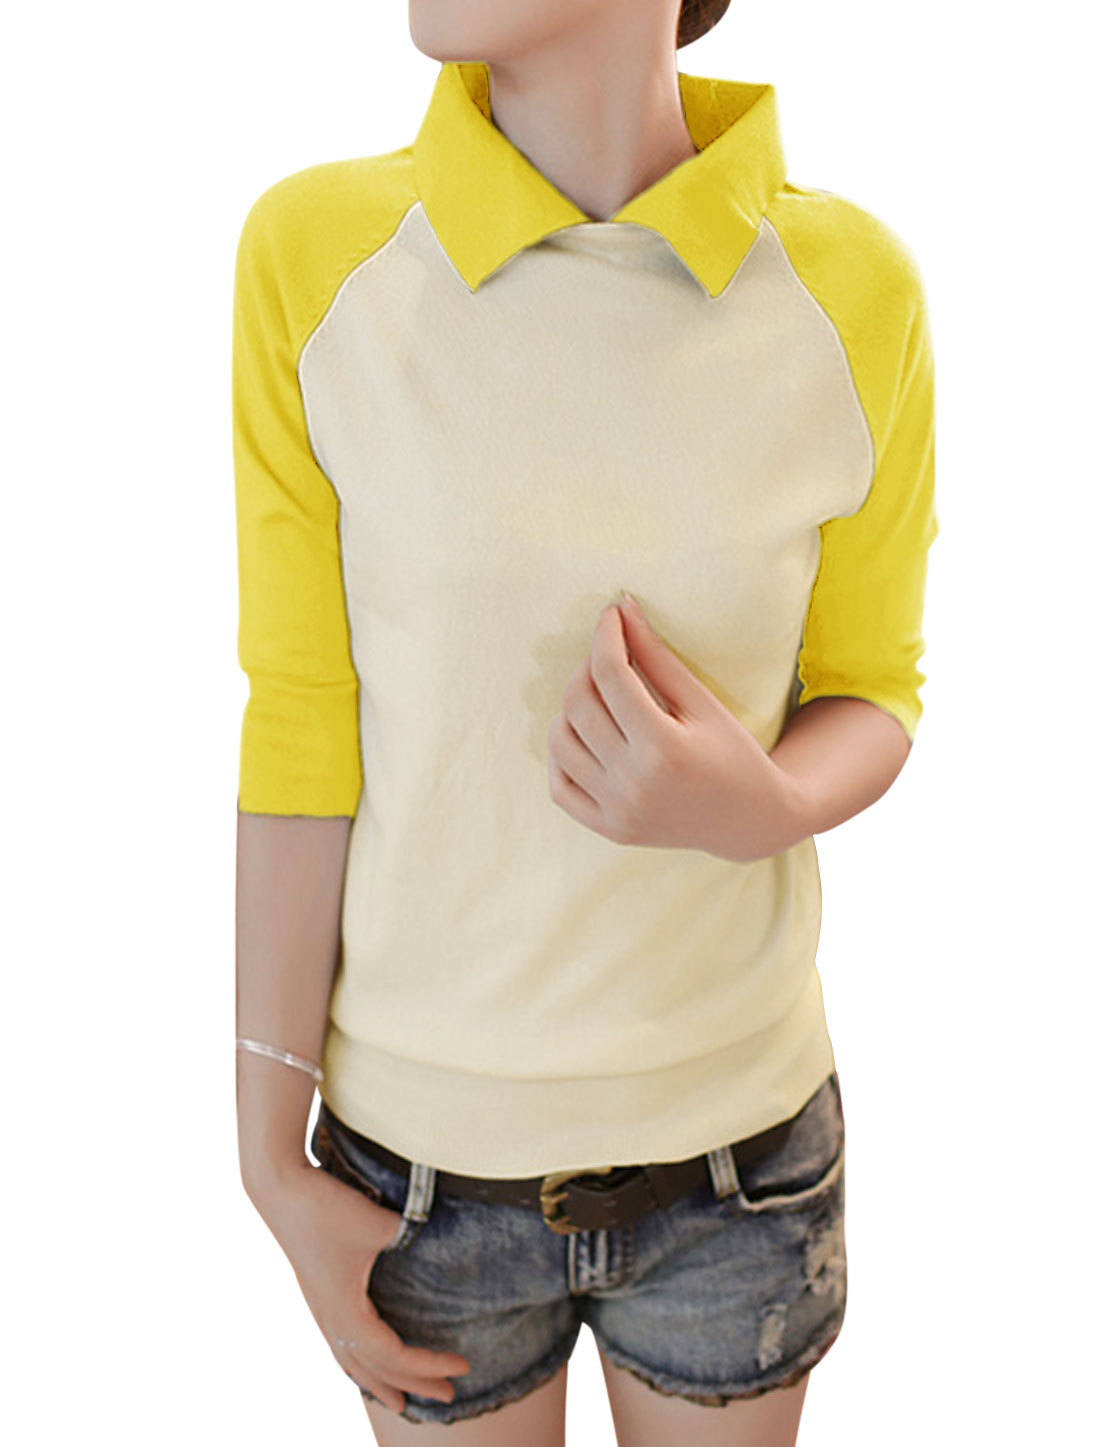 Women Color Block Slipover Raglan Sleeve Knit Shirt Yellow Beige XS